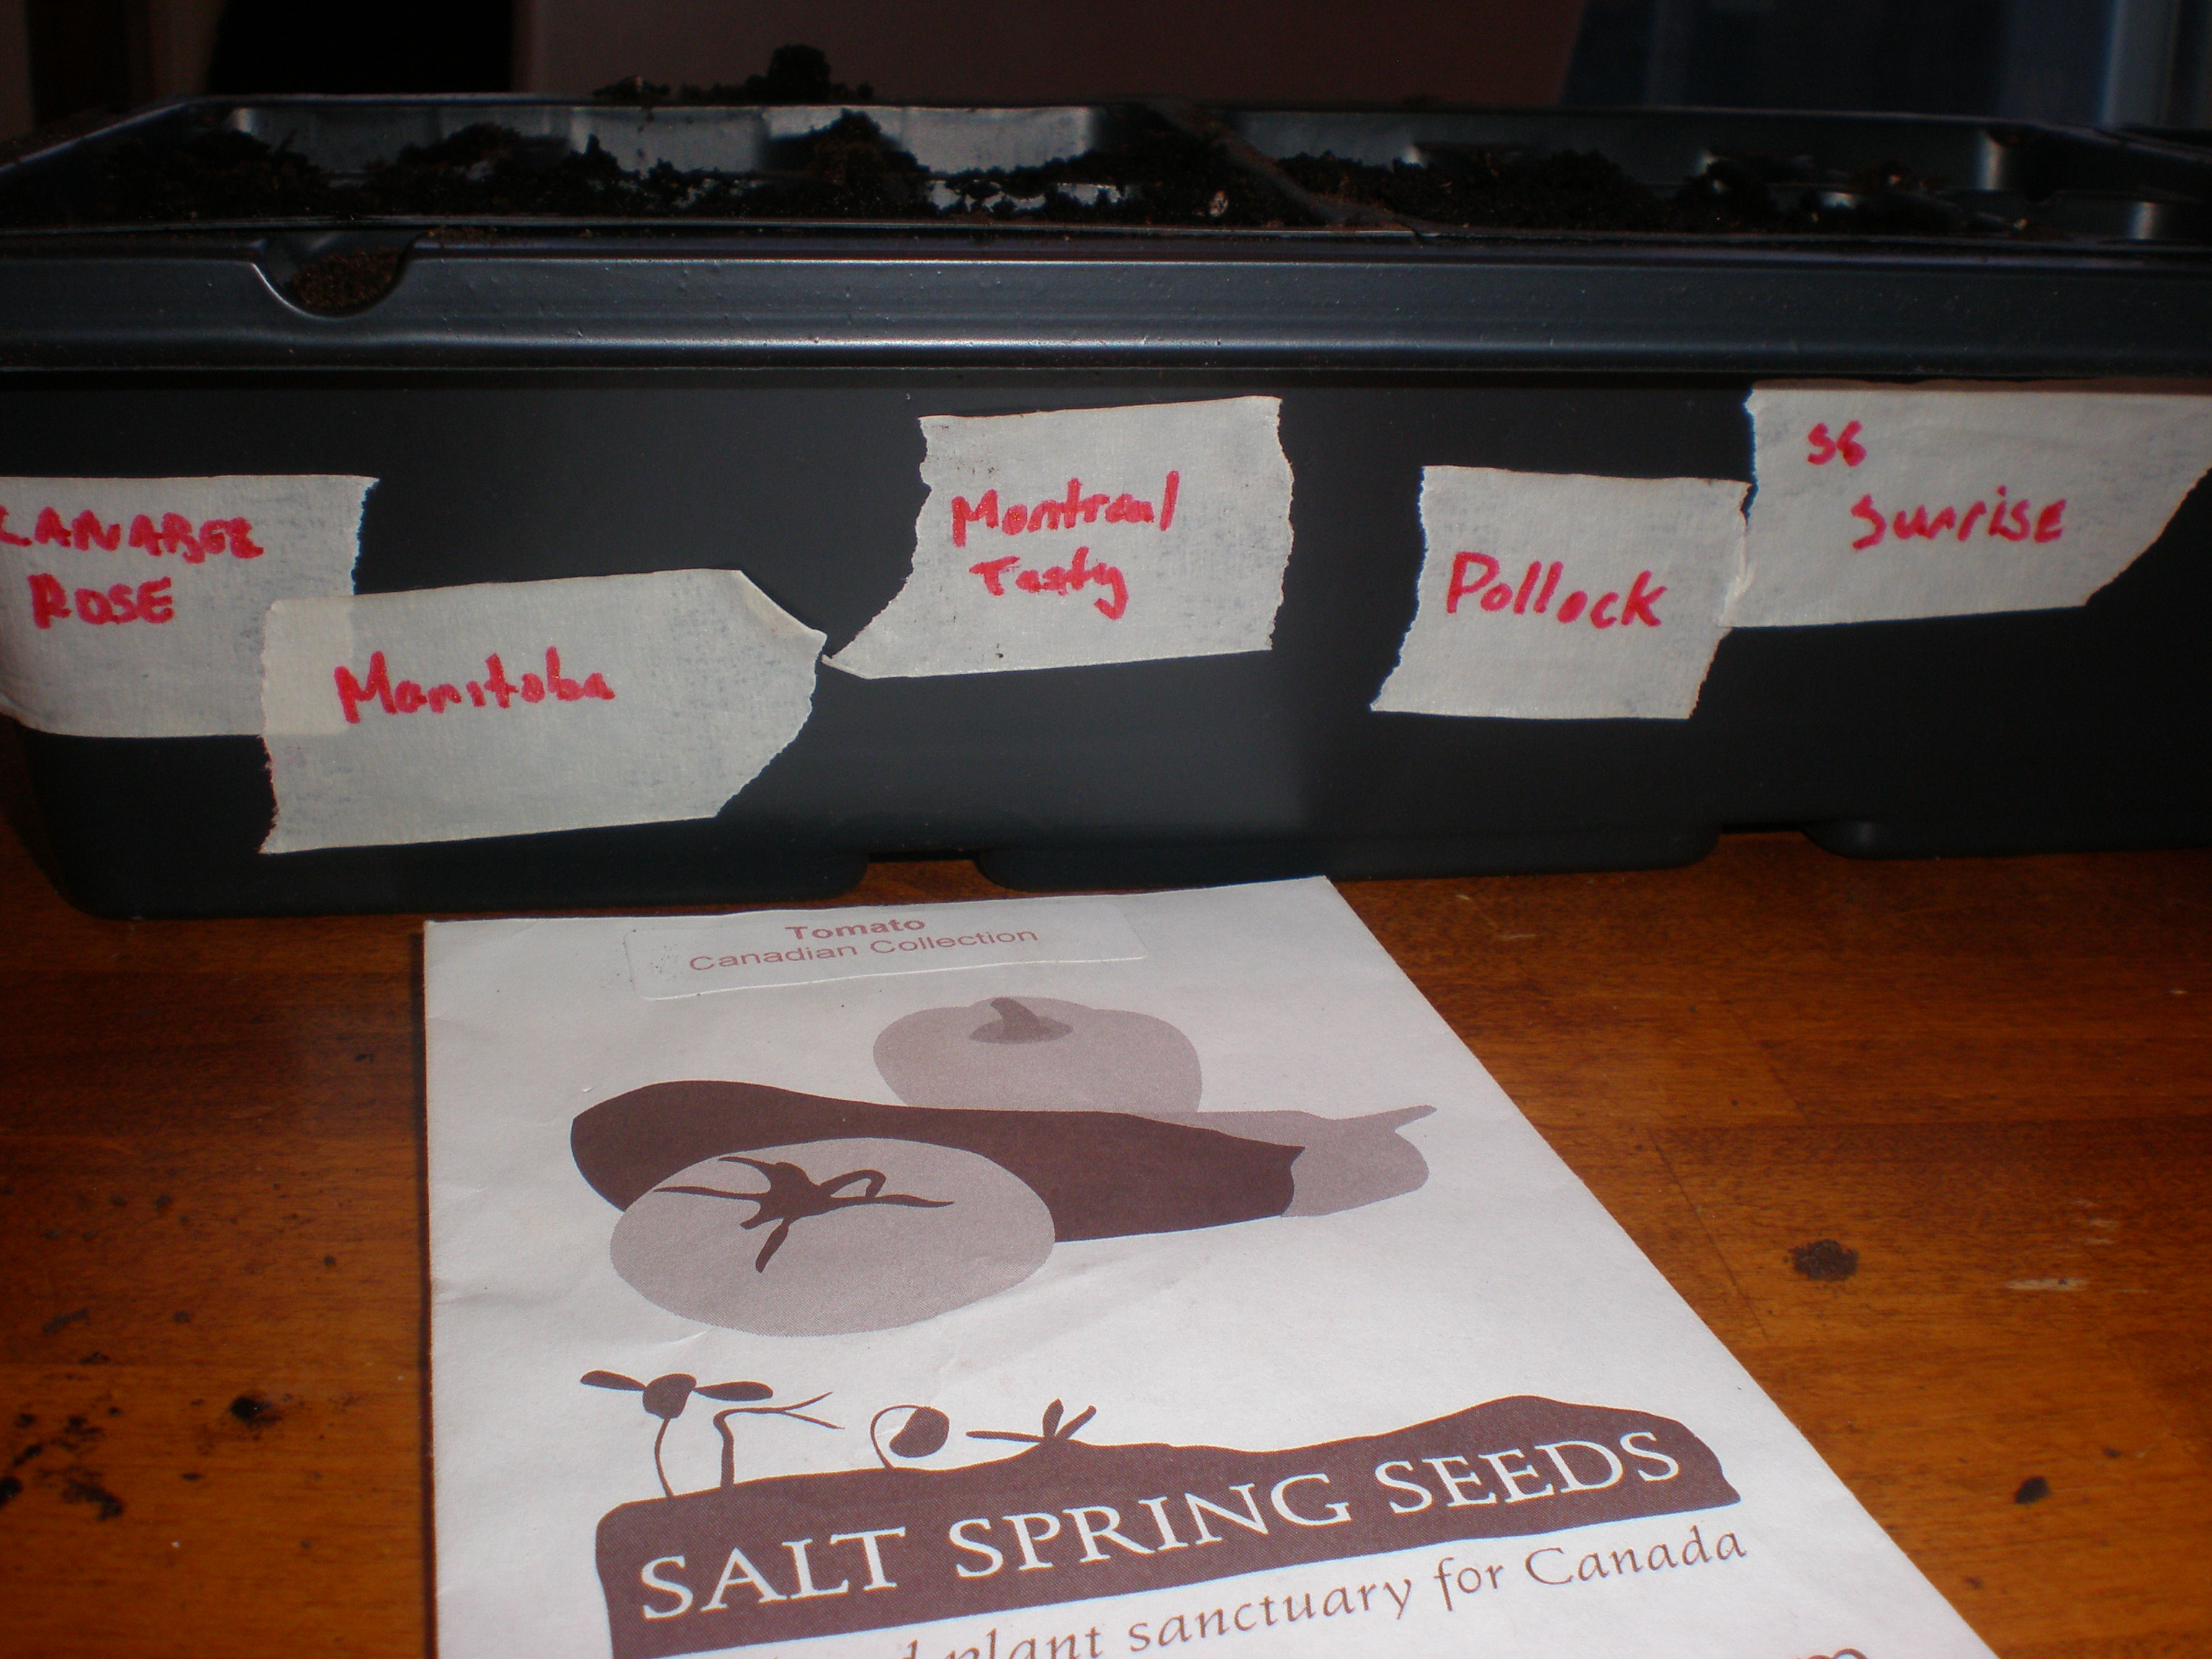 Salt Spring Seeds' Canadian Collection